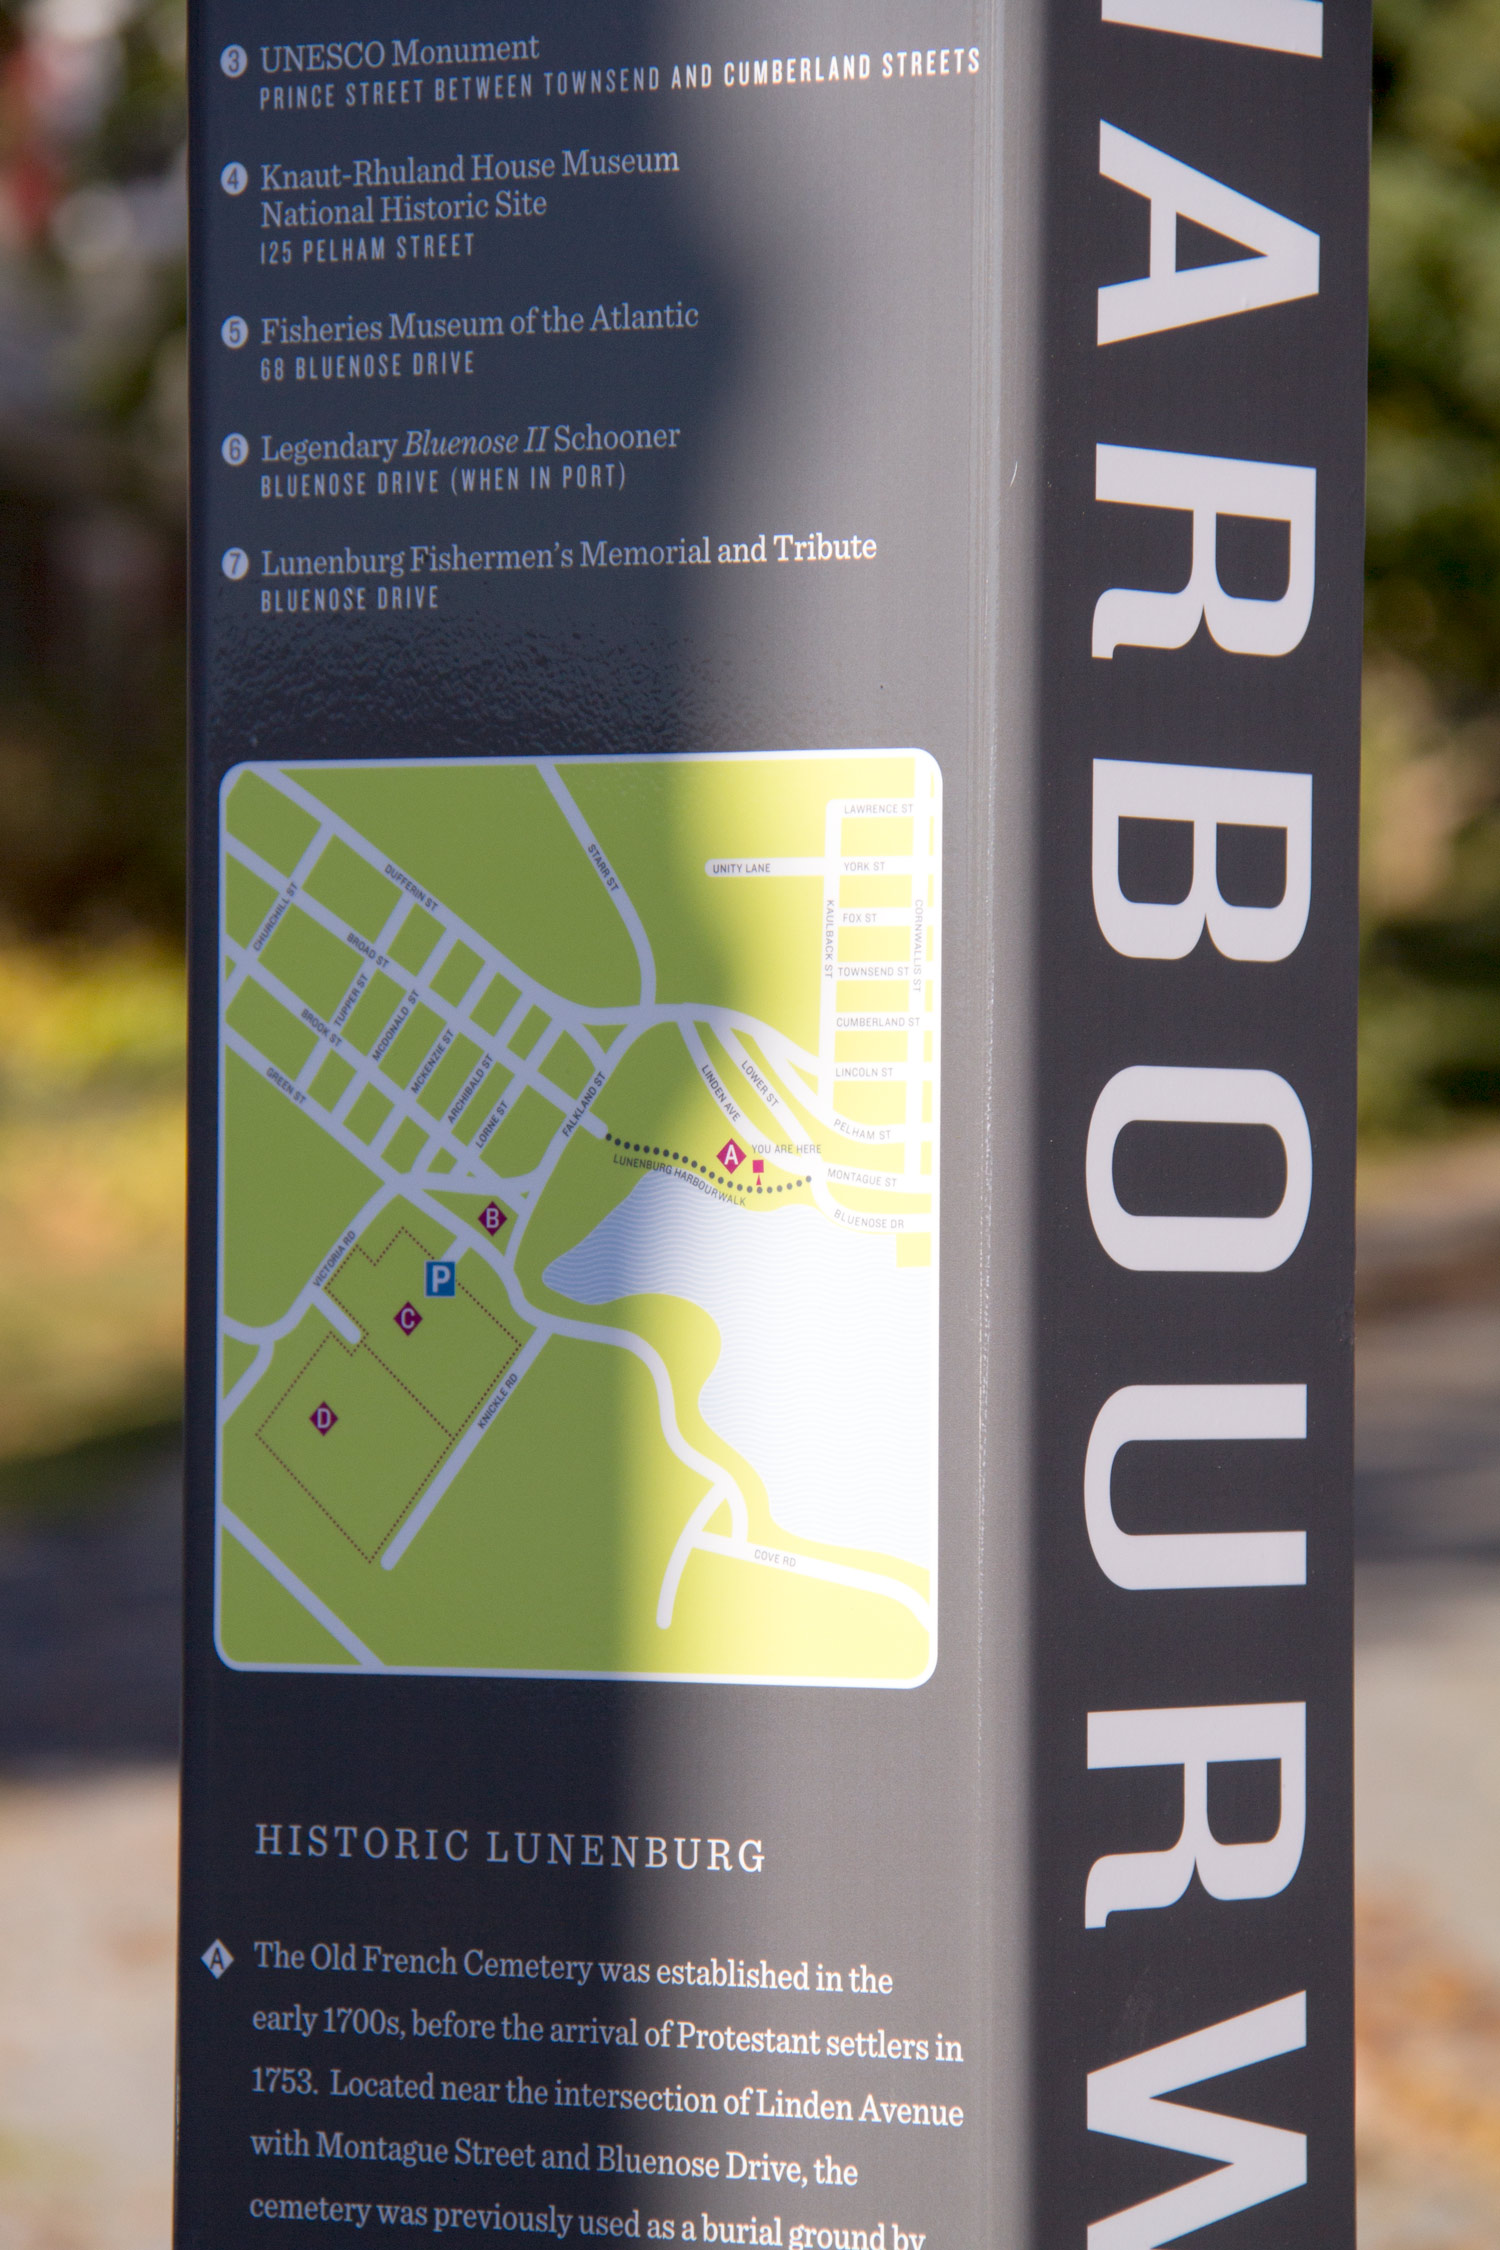 ENCOURAGING WALKING Customized maps show important stops within a few minutes' walk, while interpretive text introduces visitors to the Lunenburg story, building on the UNESCO World Heritage Site's strong historic brand.